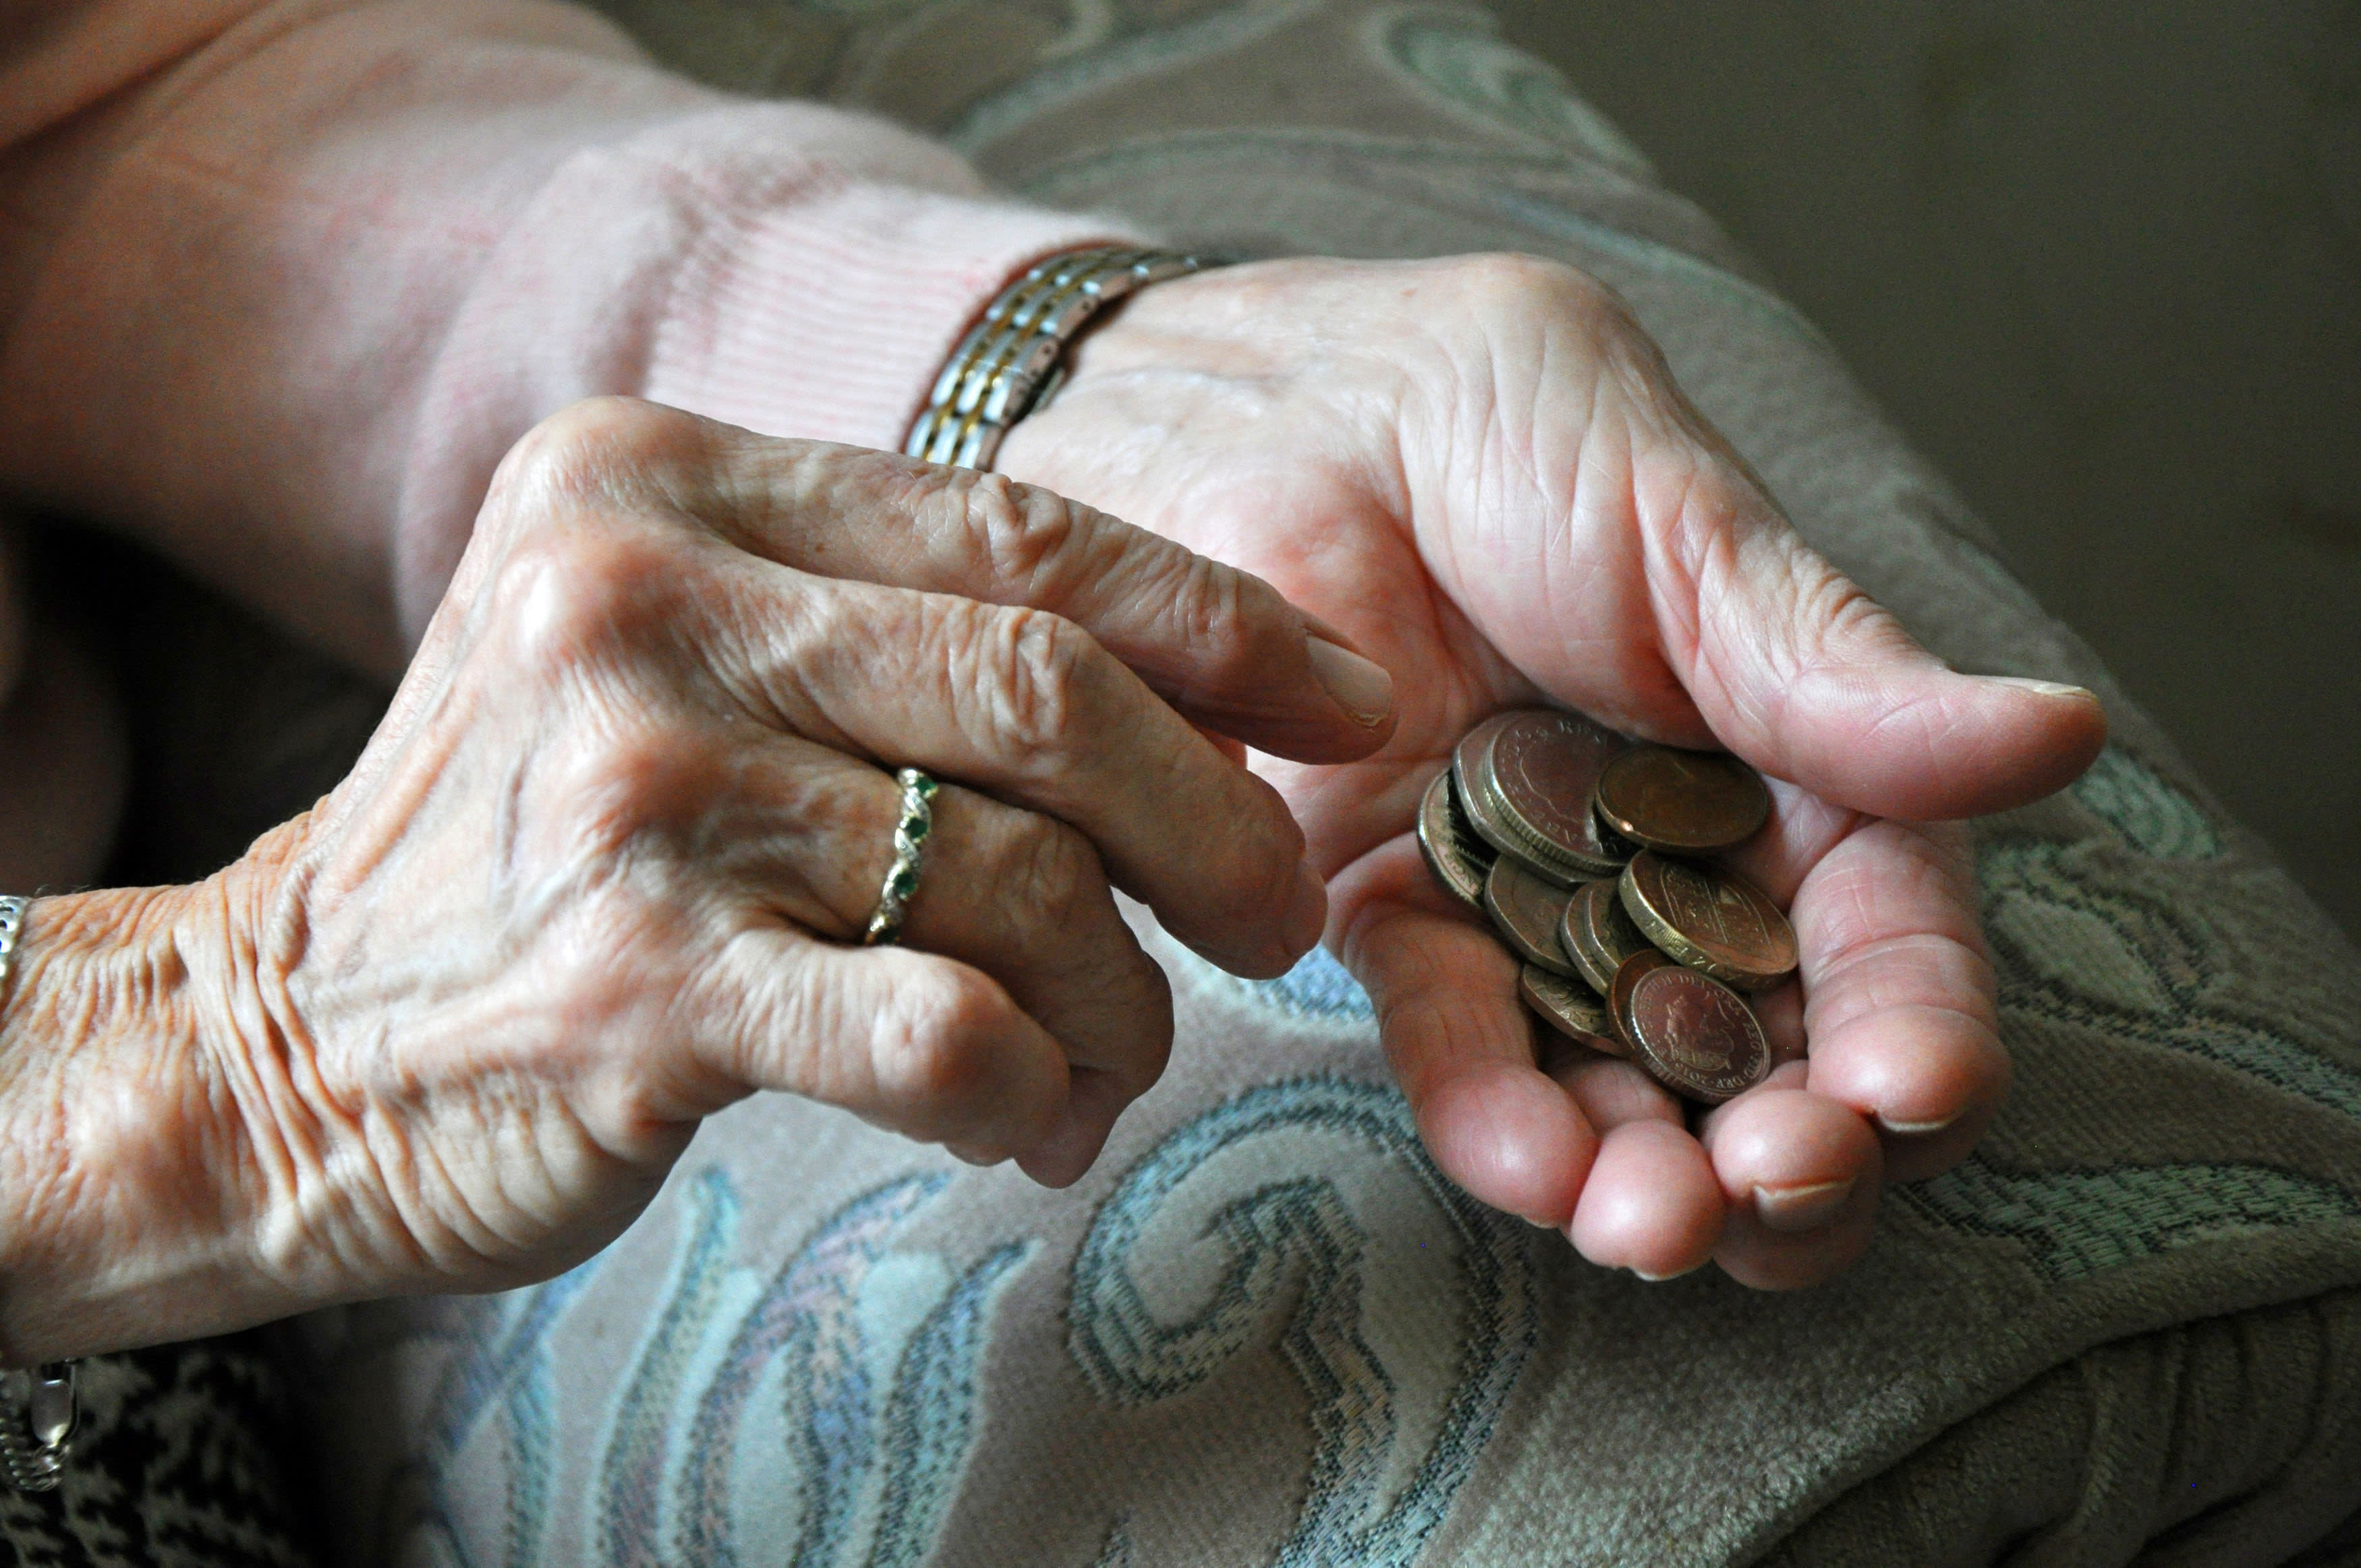 Teachers' pensions overpaid by £15m